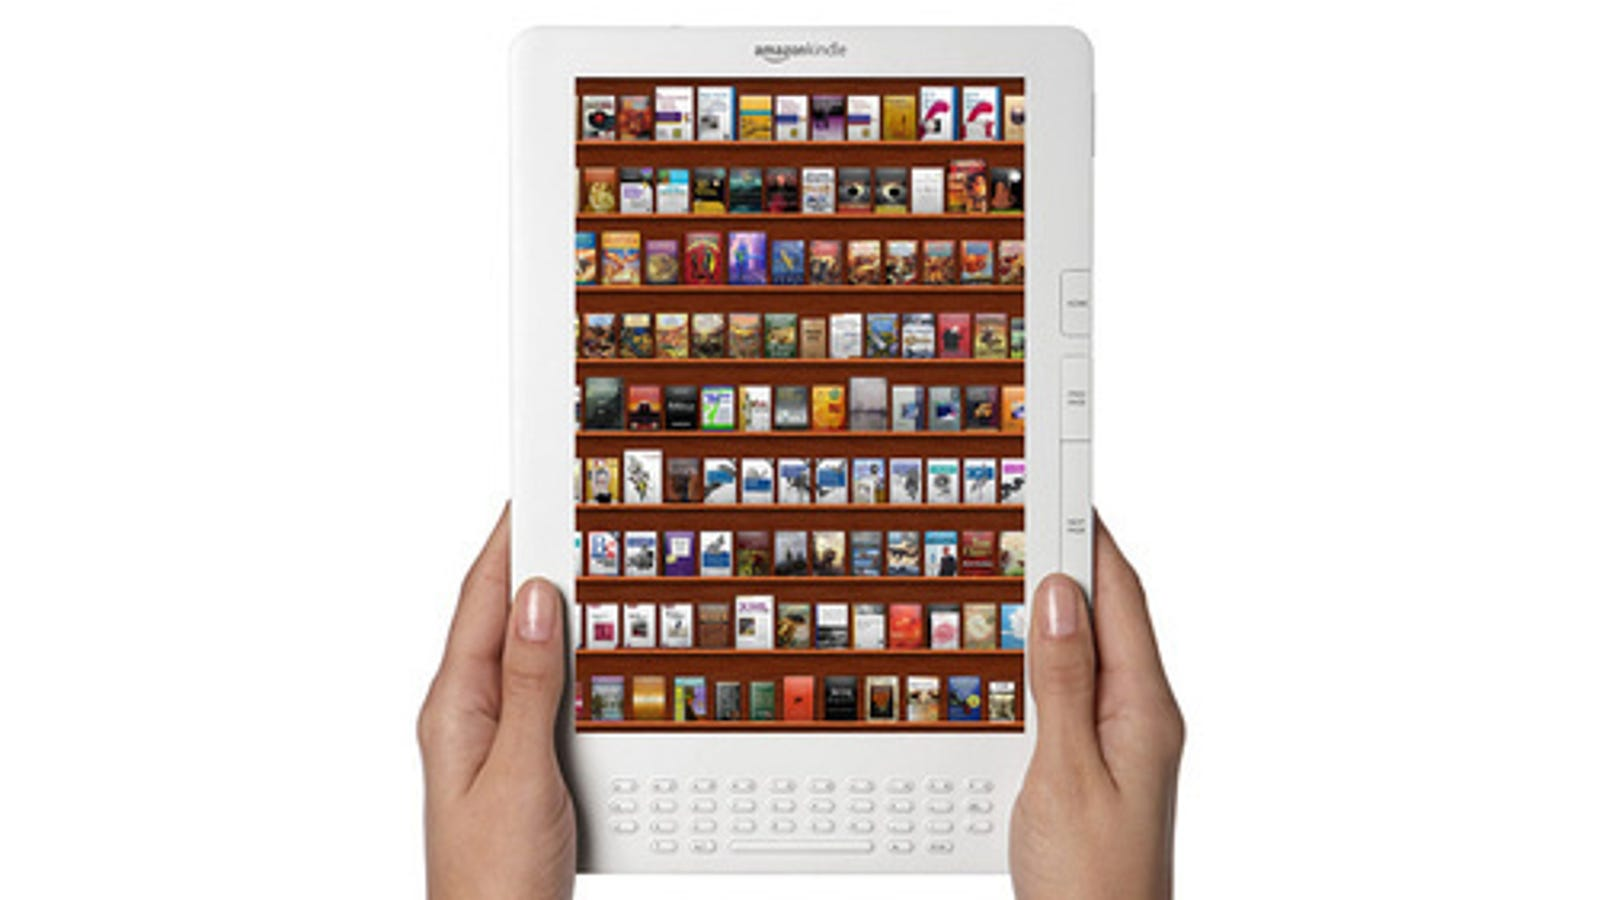 Color Touch-Sensitive Ereader Screens Coming This Year, Sez Kindle